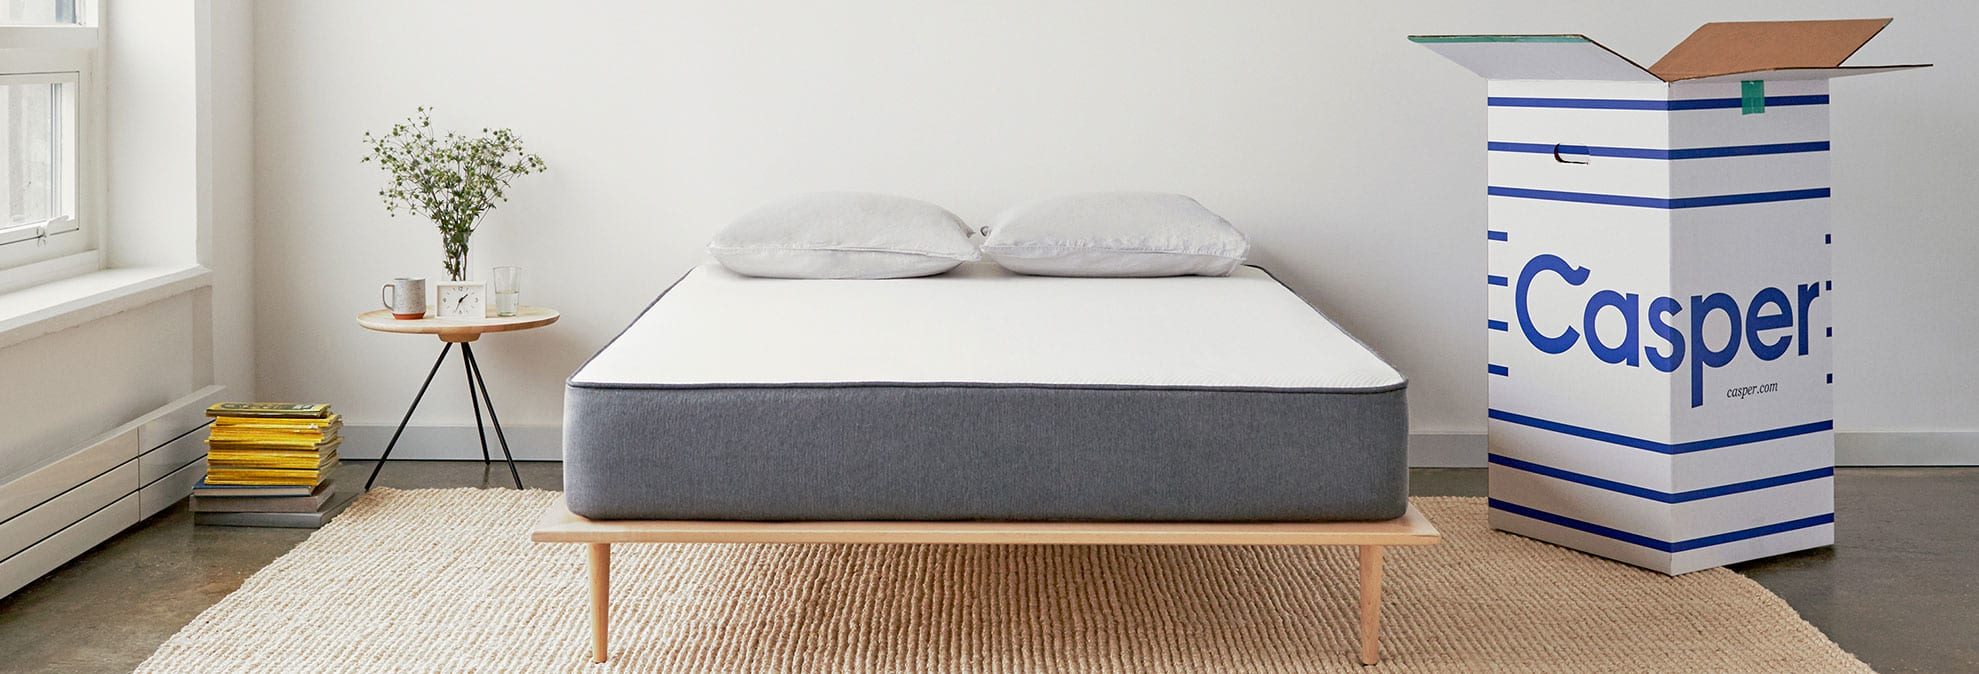 Used Twin Mattress For Sale You Can Now Find Casper Mattresses At Target Consumer Reports